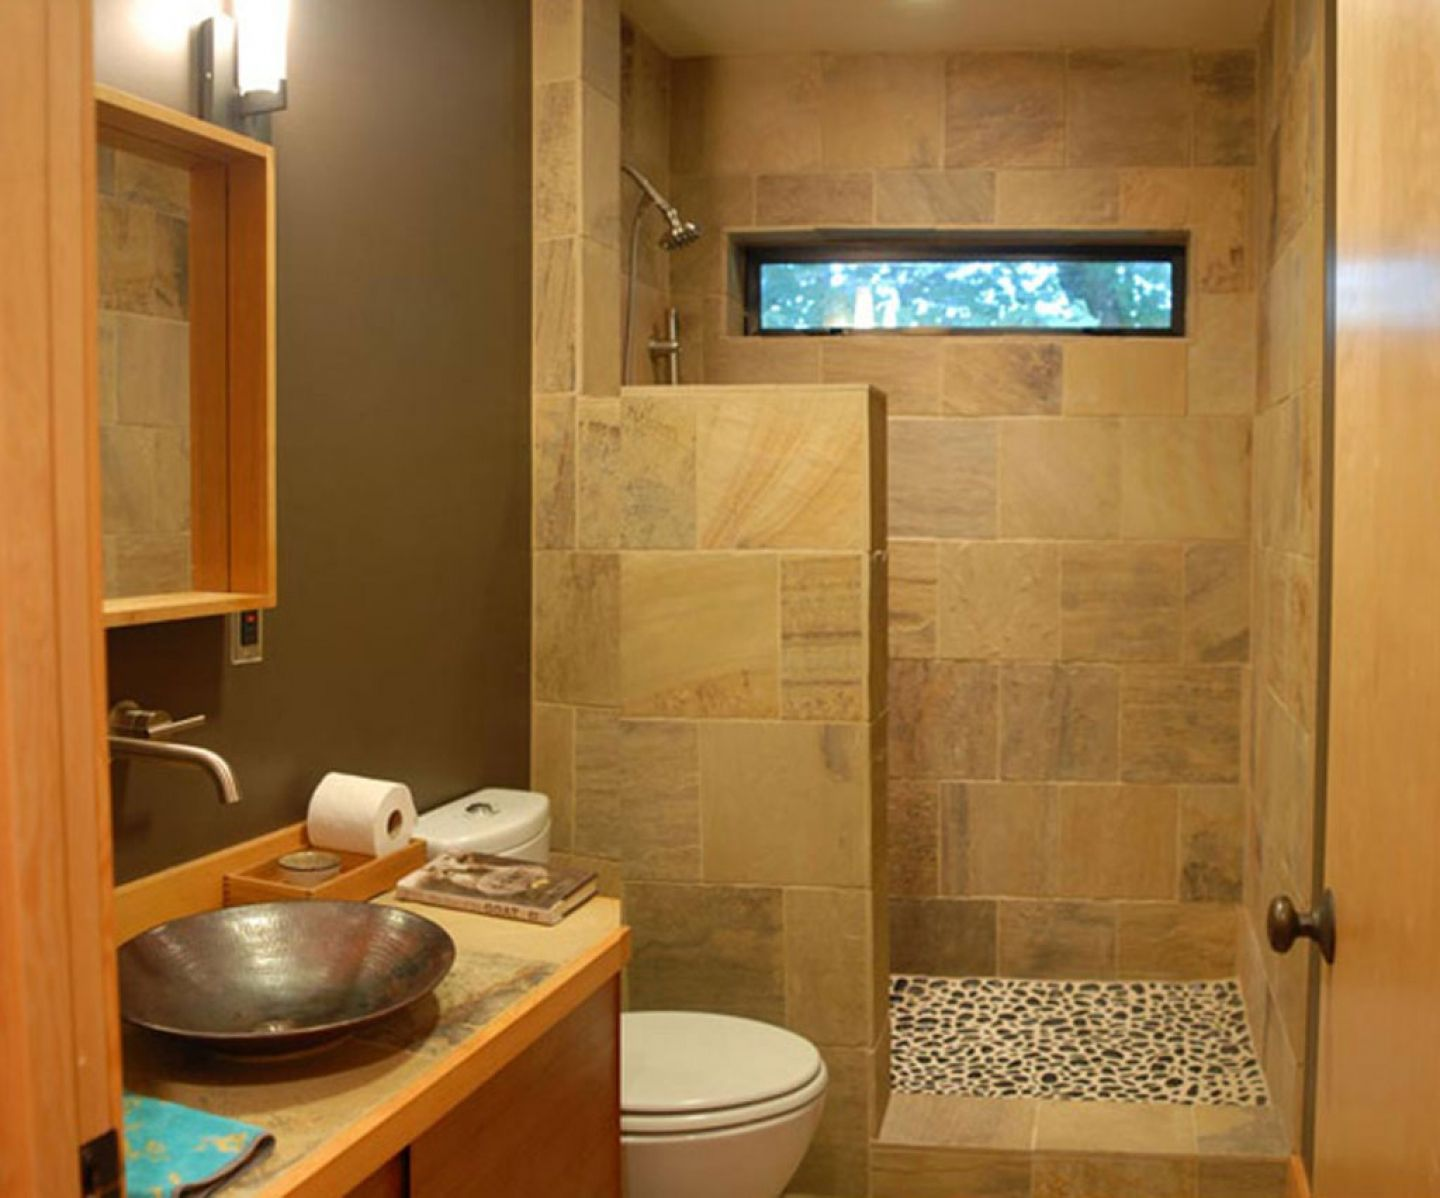 25 Small Bathroom Ideas Photo Gallery With Images Small